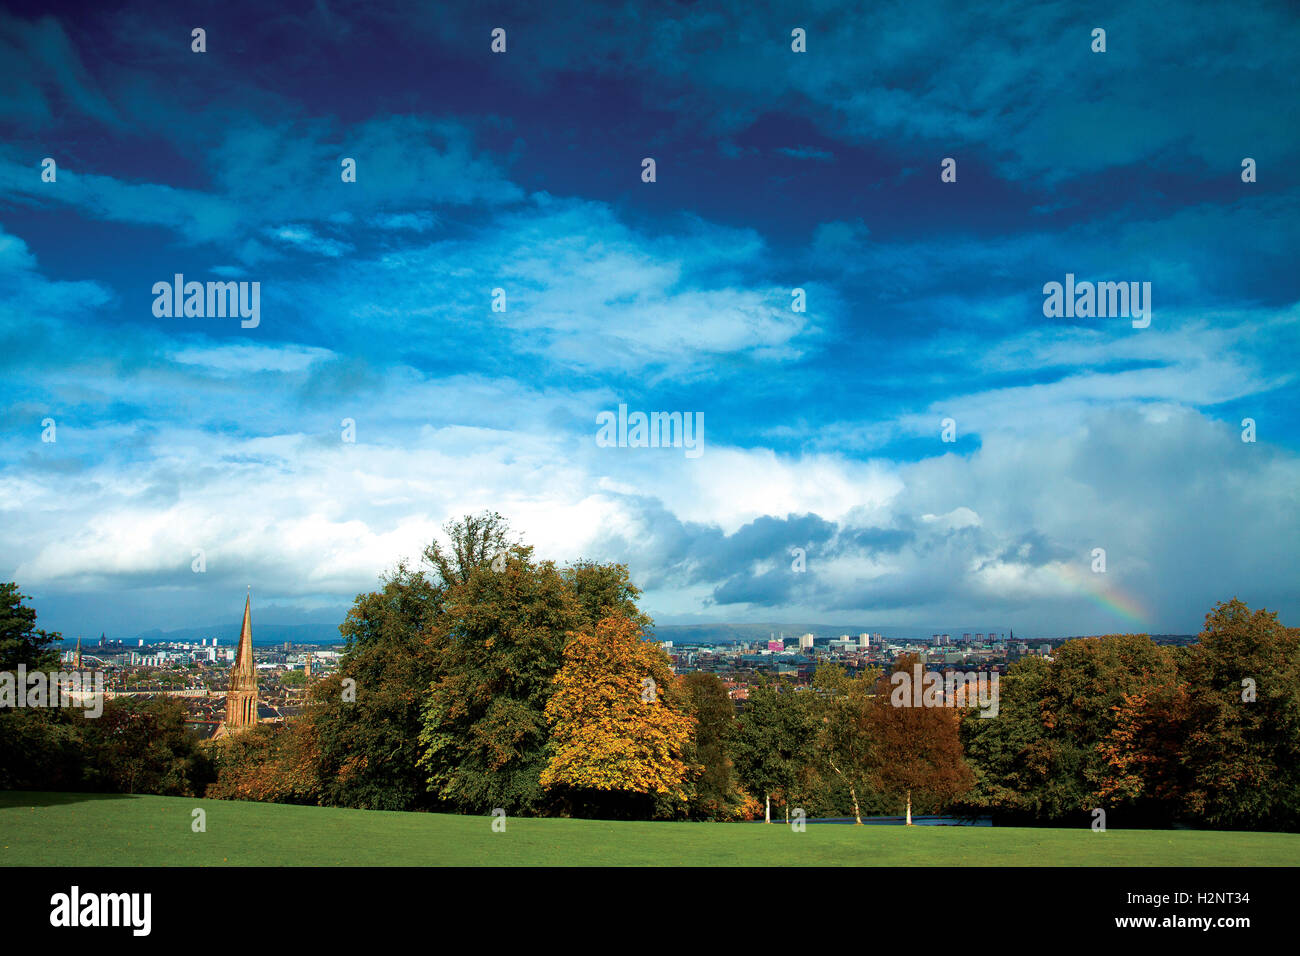 Glasgow from Queen's Park, Glasgow - Stock Image